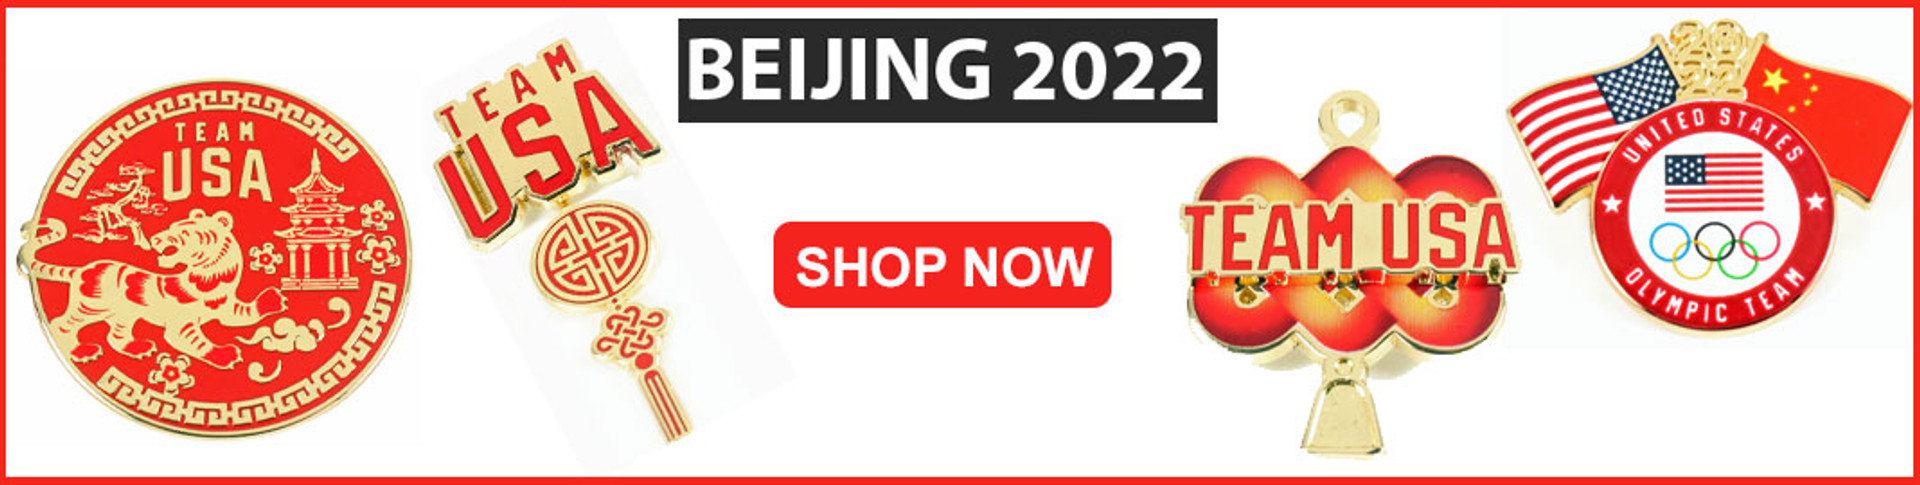 beijing 2022 olympic pins